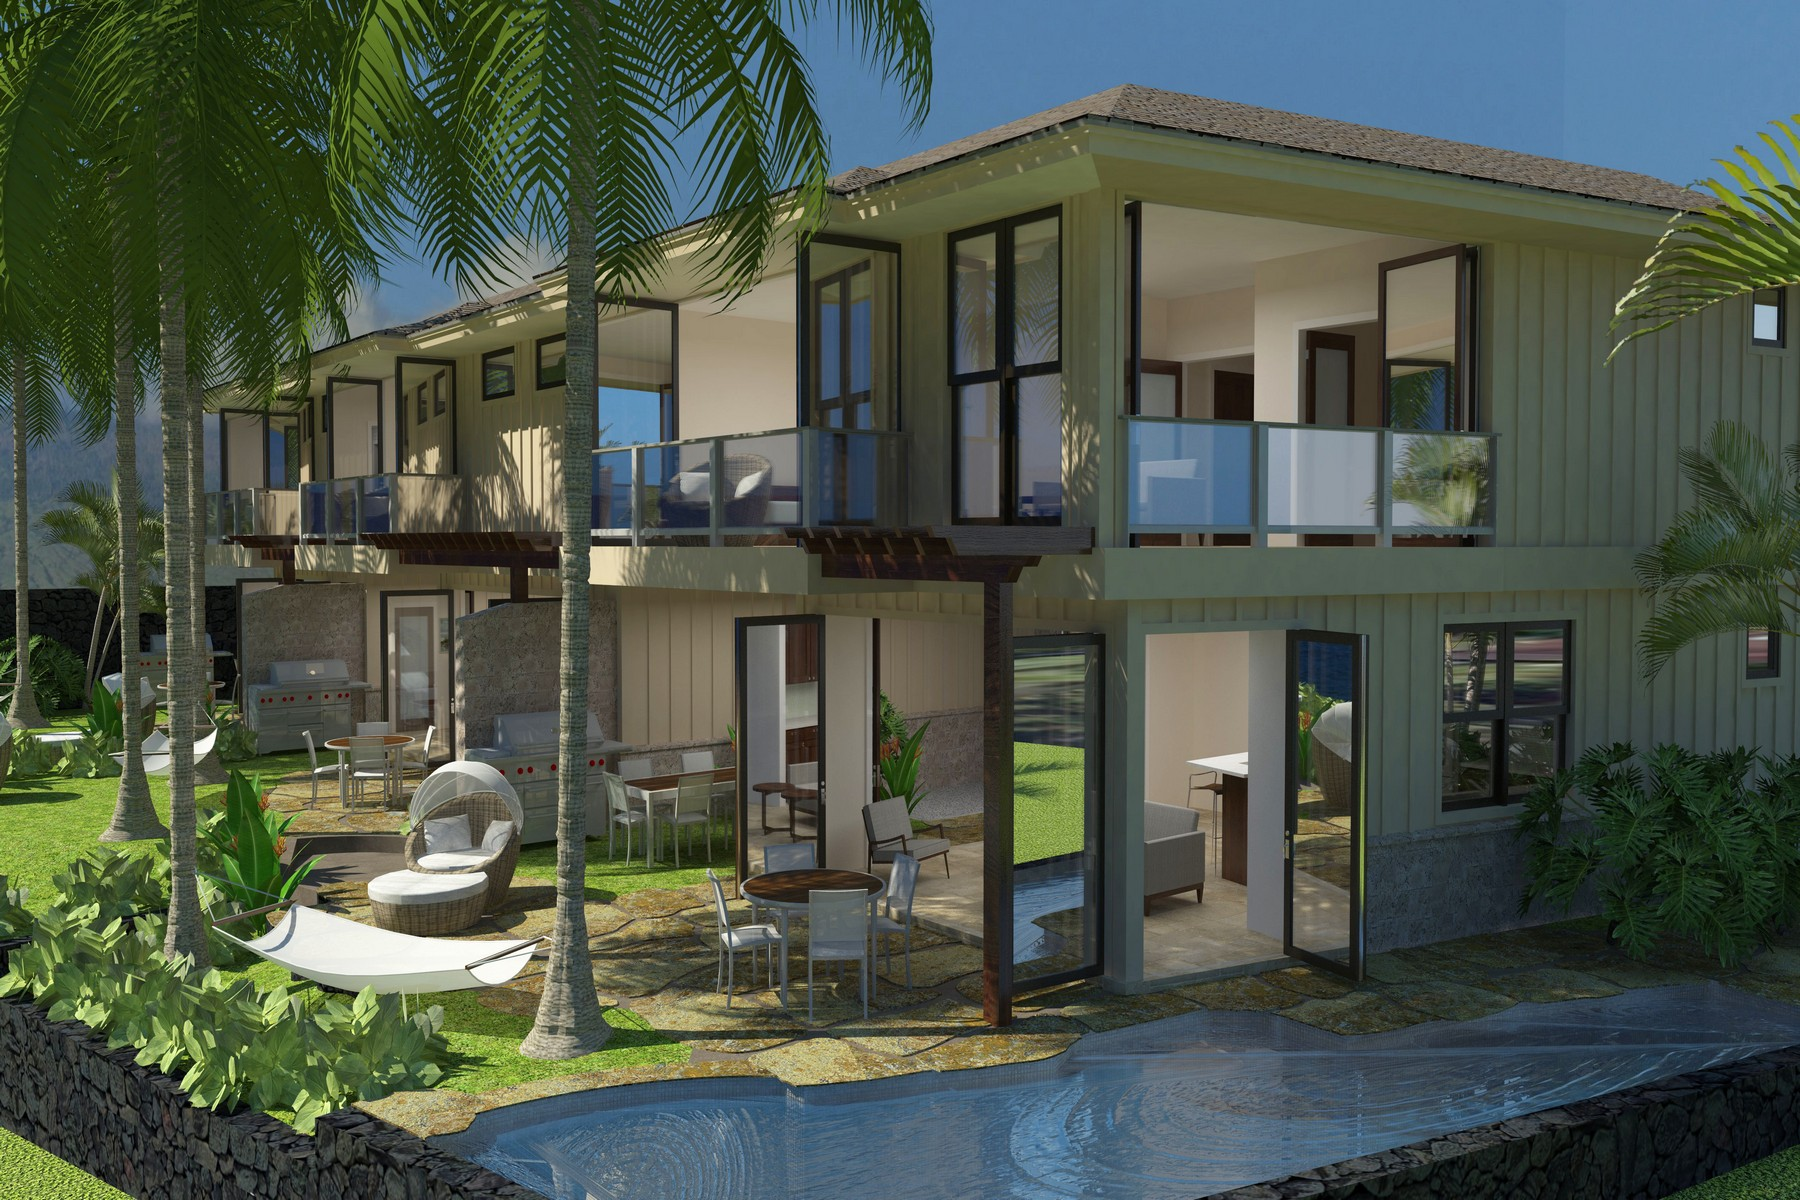 Condominio por un Venta en Maui New Construction Luxury Beachfront Condo 2192 Iliili Road, Maui Beach Place Orchid Kihei, Hawaii 96753 Estados Unidos